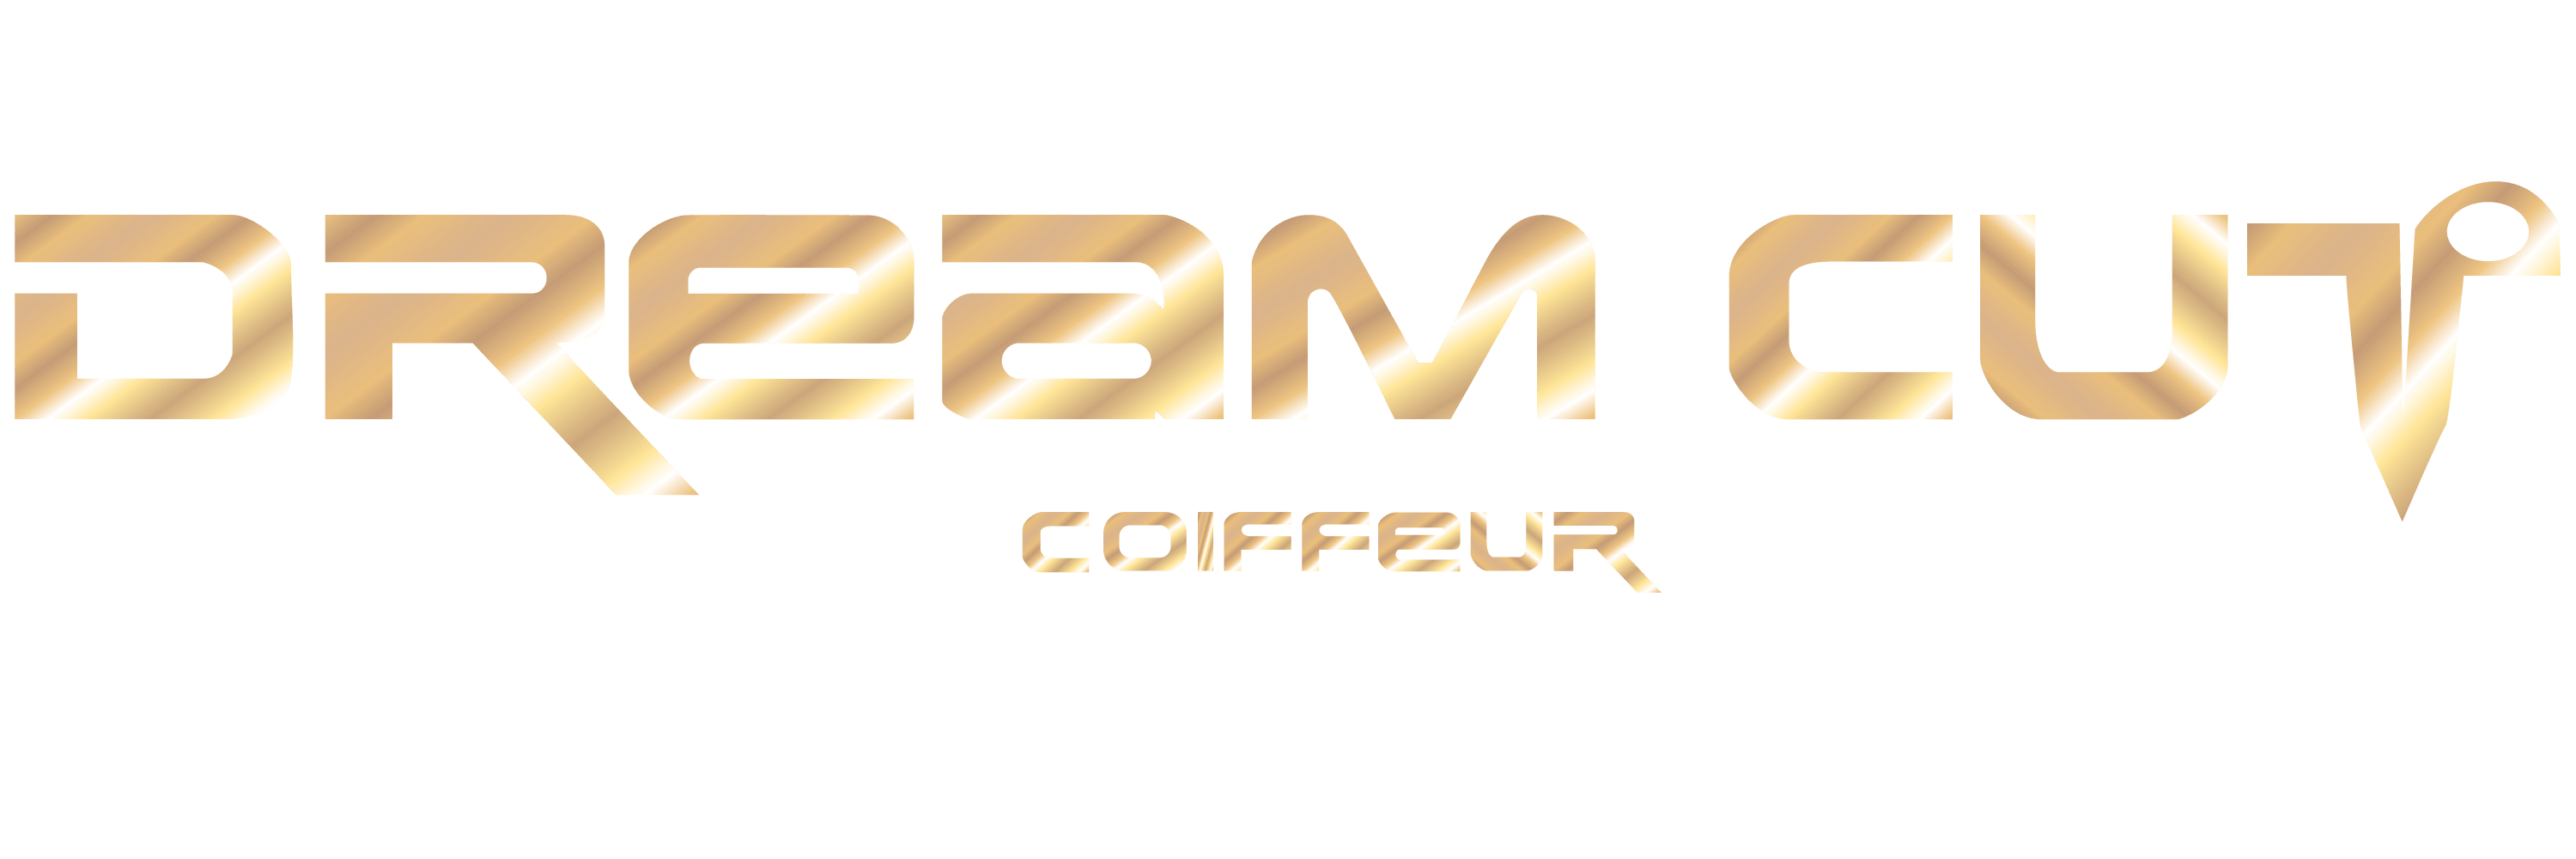 Dream Cut Coiffeur | Friseursalon in Friedberg